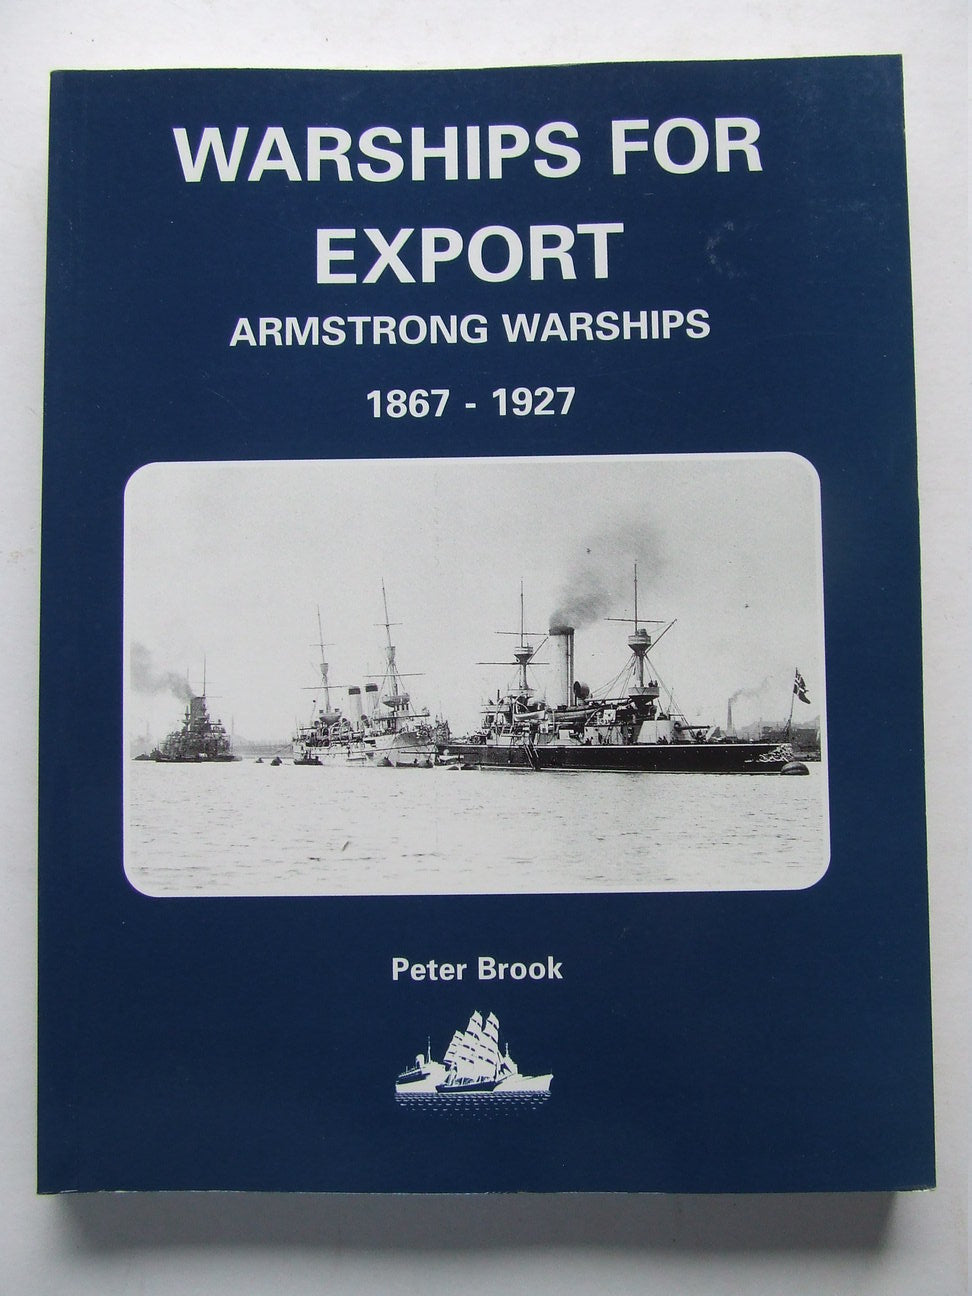 Warships for Export, Armstrong warships 1867-1927